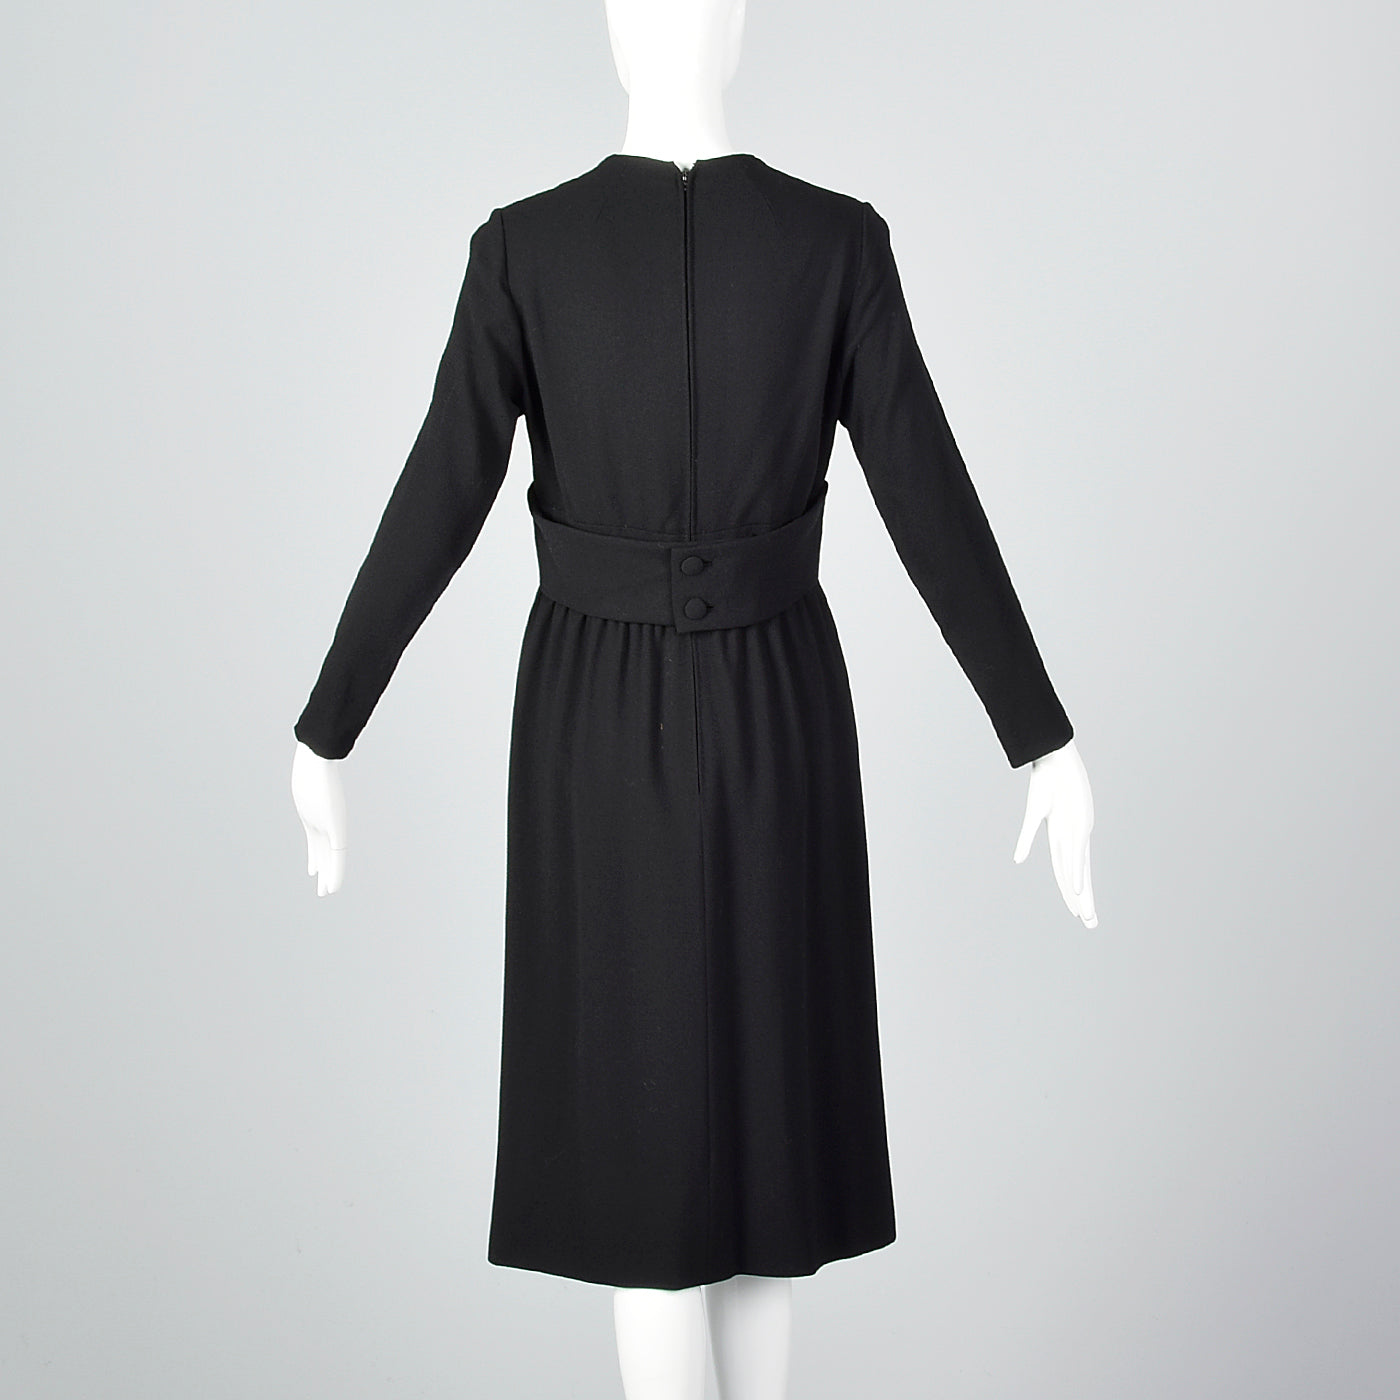 1970s Norman Norell Long Sleeve Little Black Dress in Winter Weight Wool, Gustave Tassell